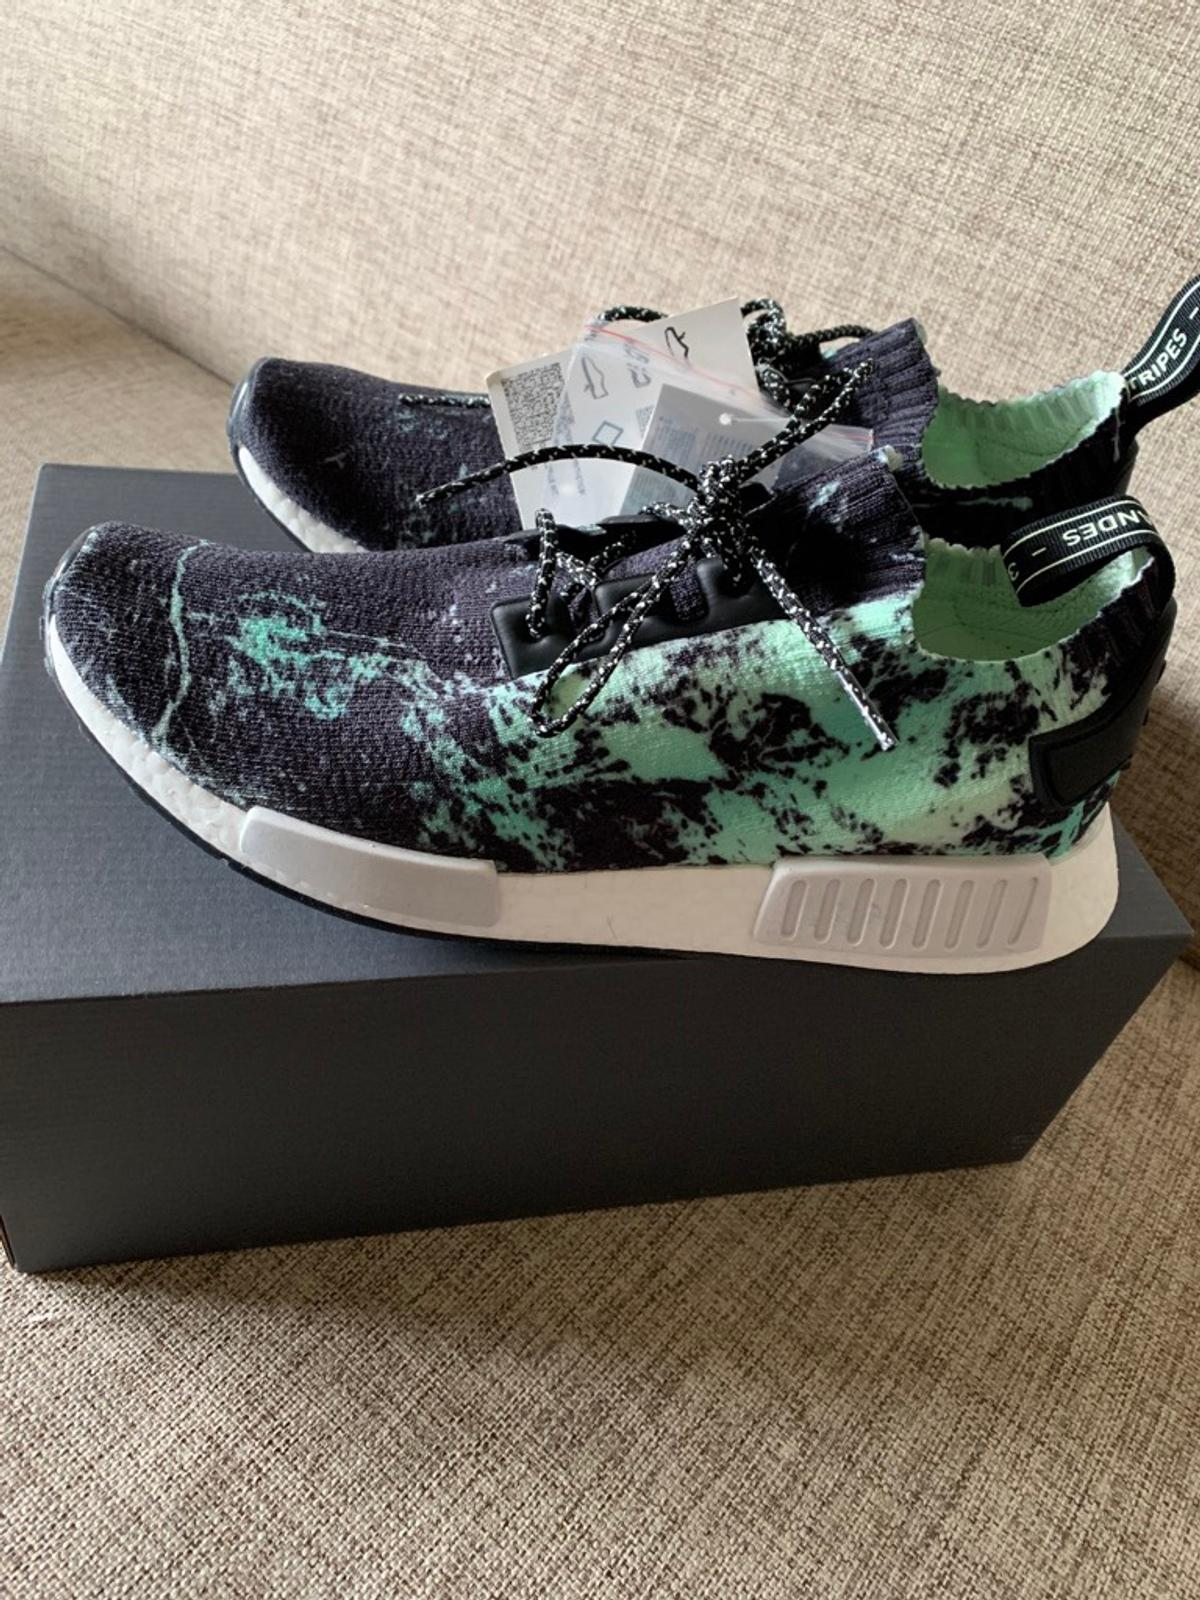 check out bf60f 22b46 Adidas NMD R1 Green marble